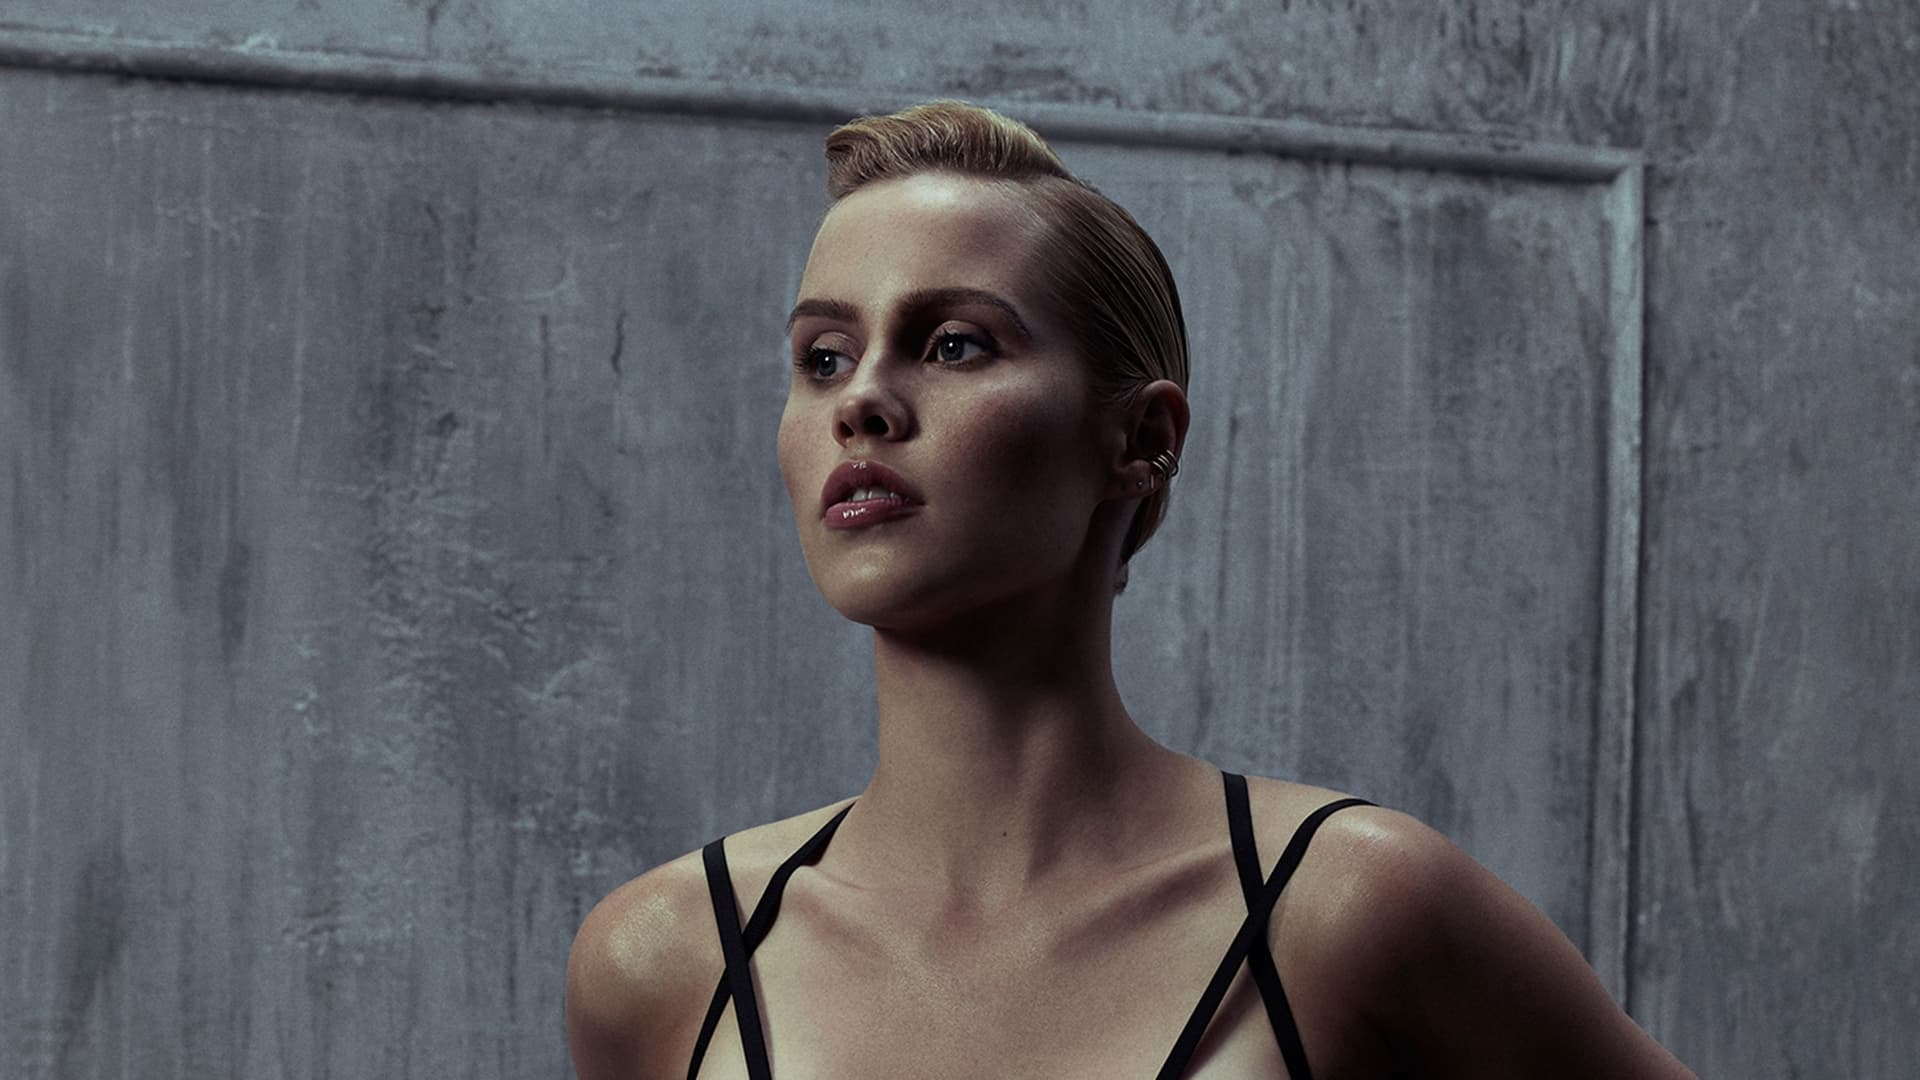 Claire Holt Full HD Image